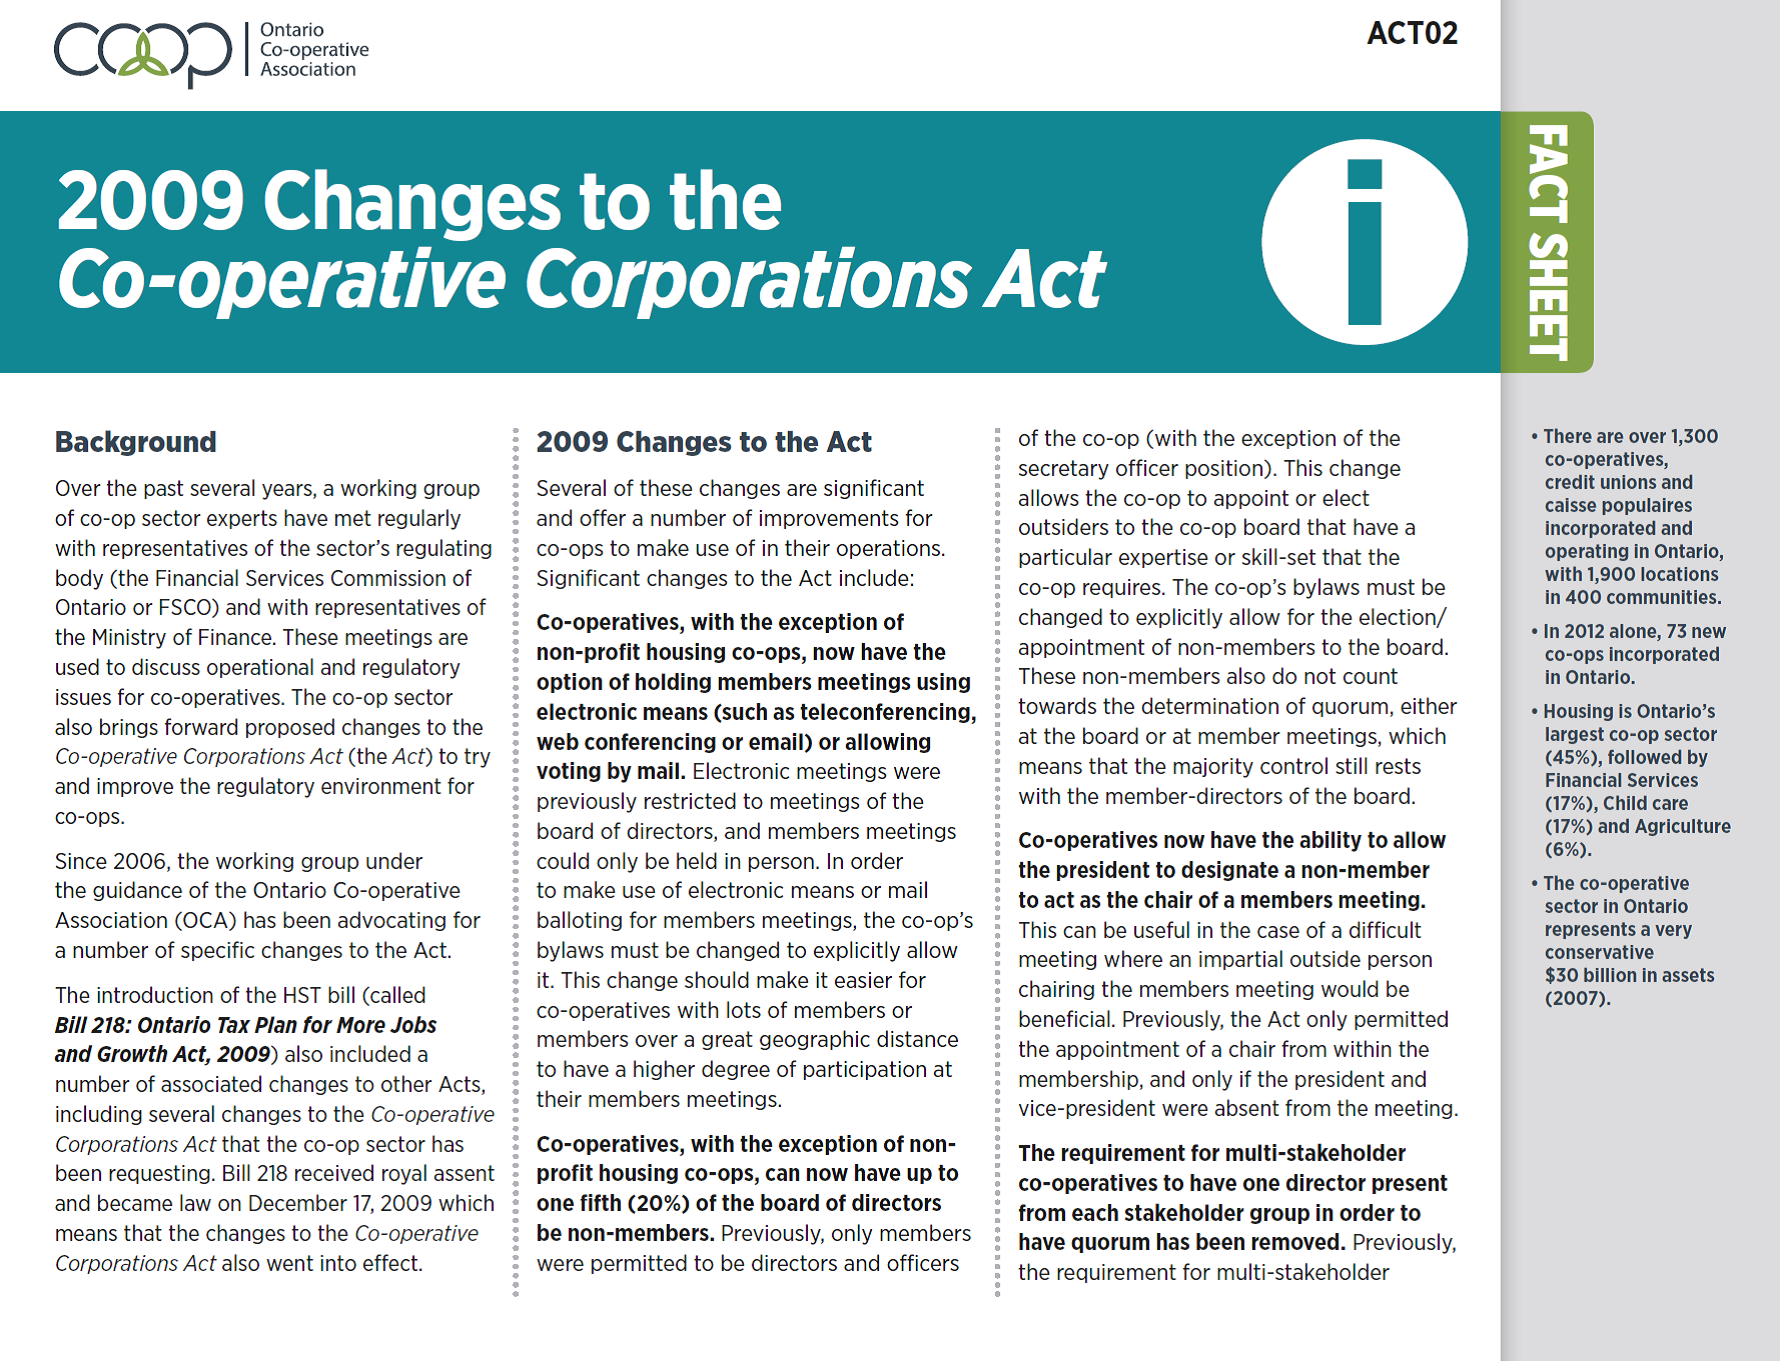 2009 Changes to the Co-operative Corporations Act